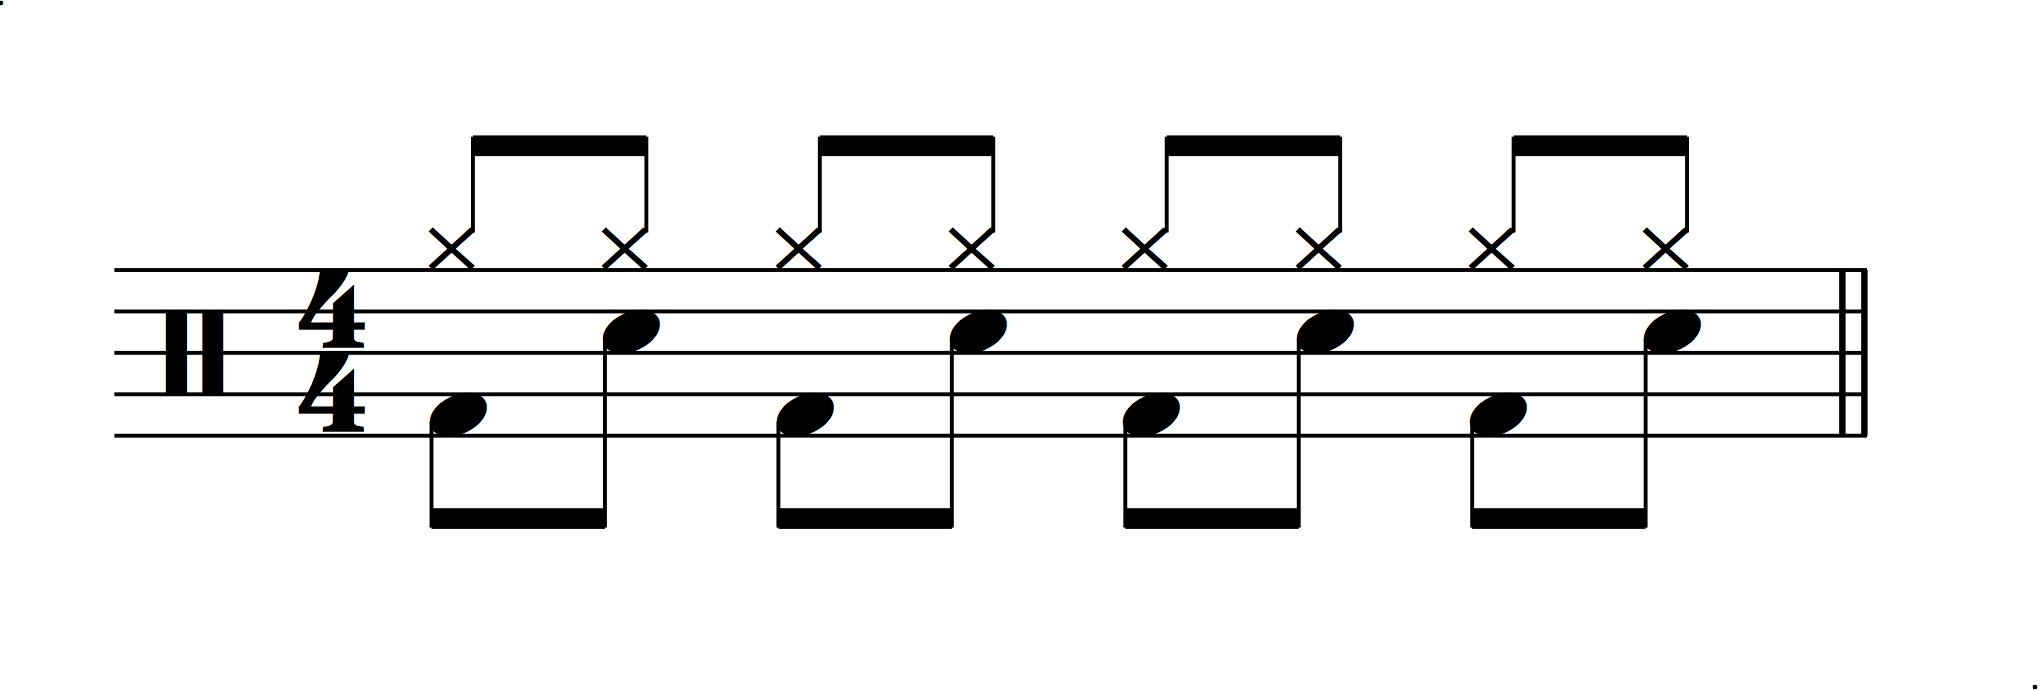 Figure 4.: Model for a double-time drum feel.